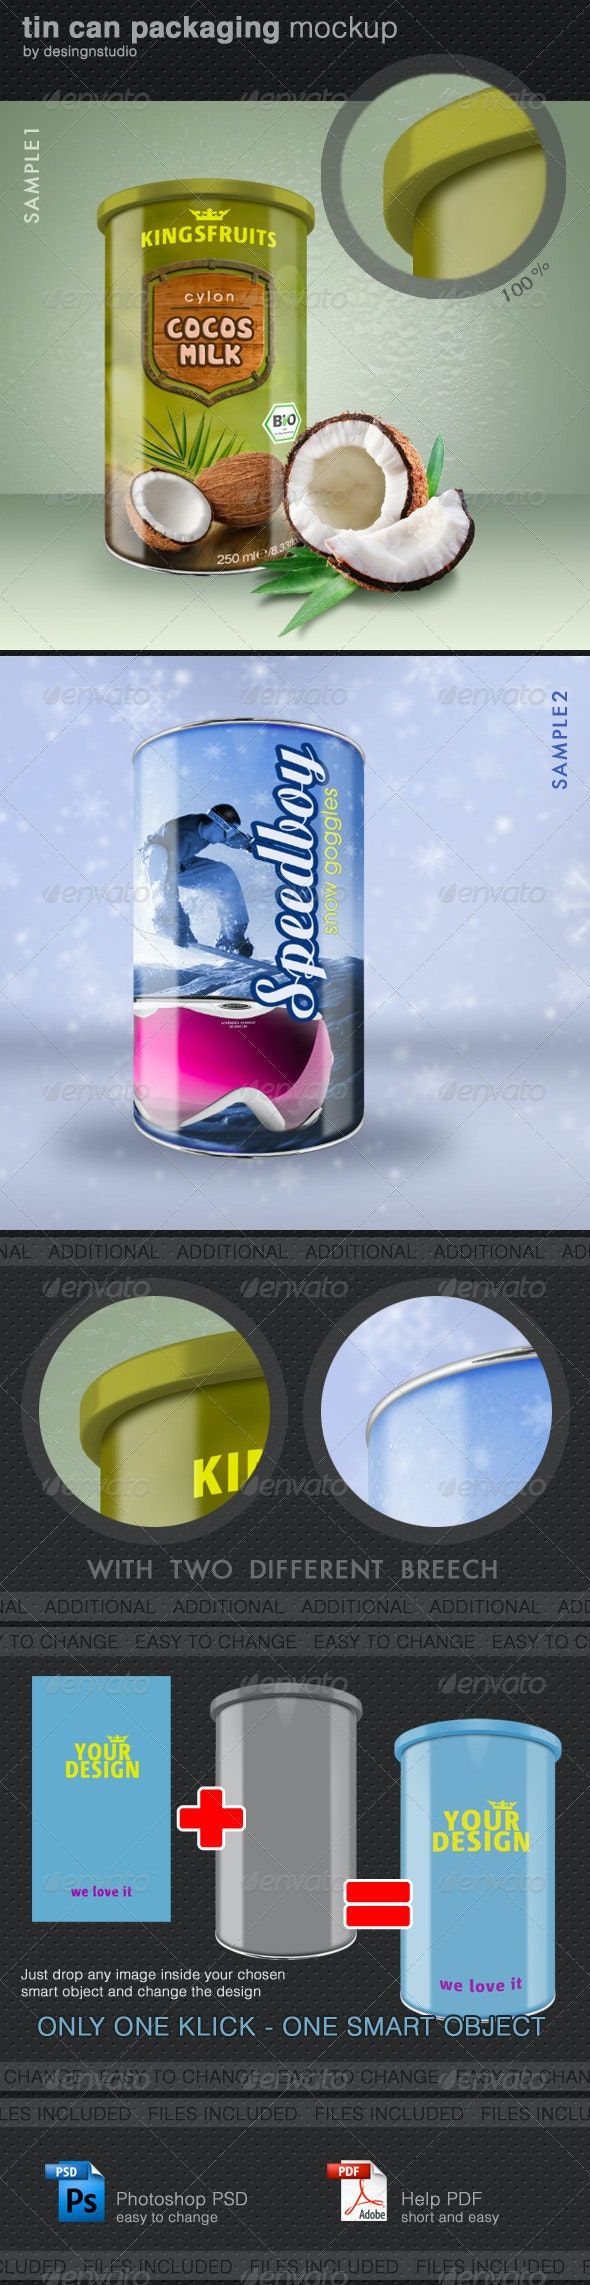 Tin Can Packaging Mock-Up - Food and Drink Packaging